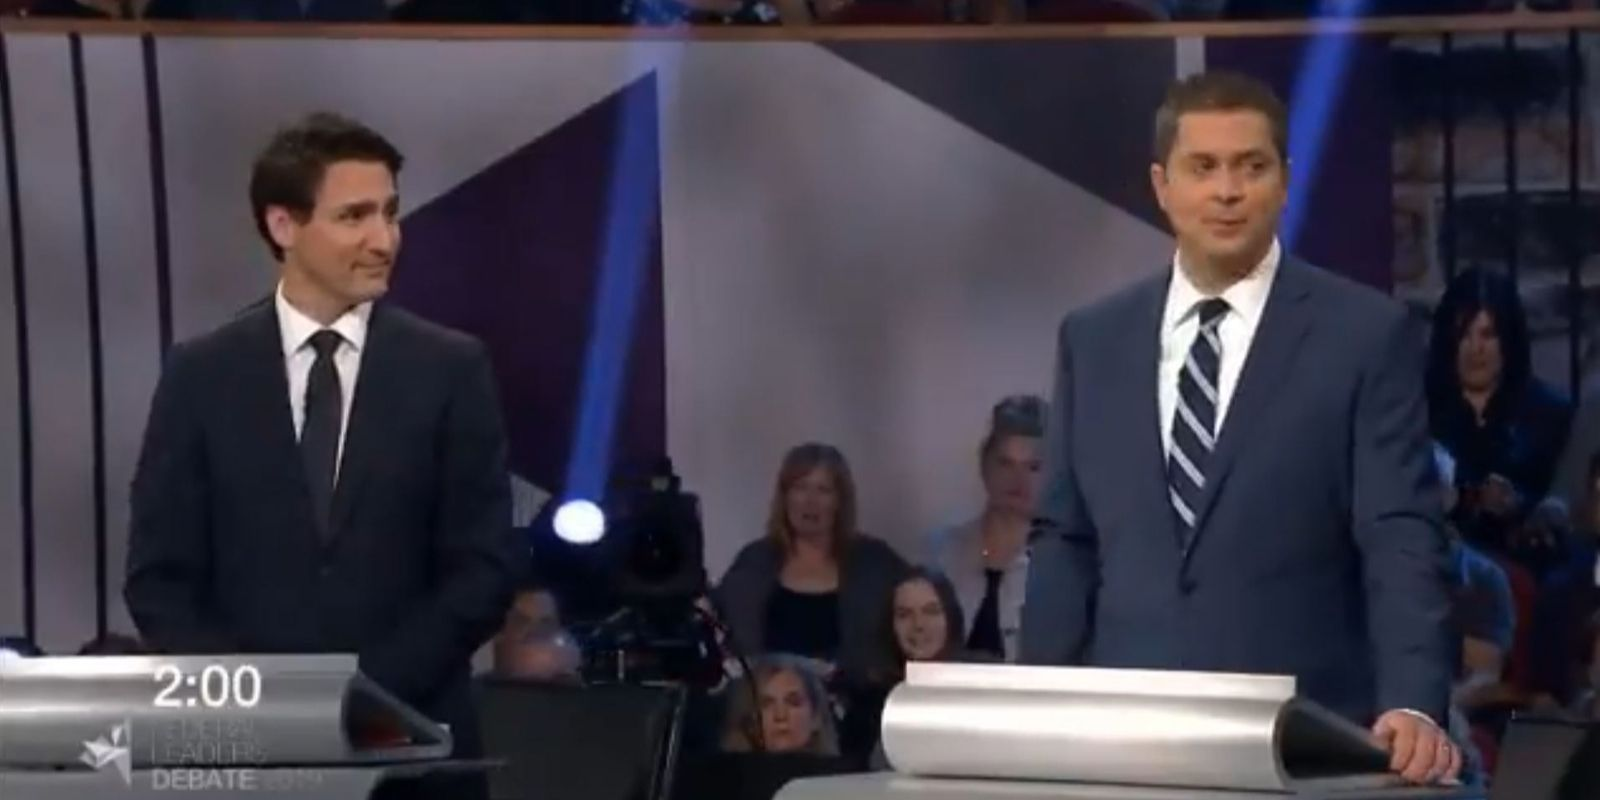 Most memorable moments from the 2019 Canadian Leaders' Debate